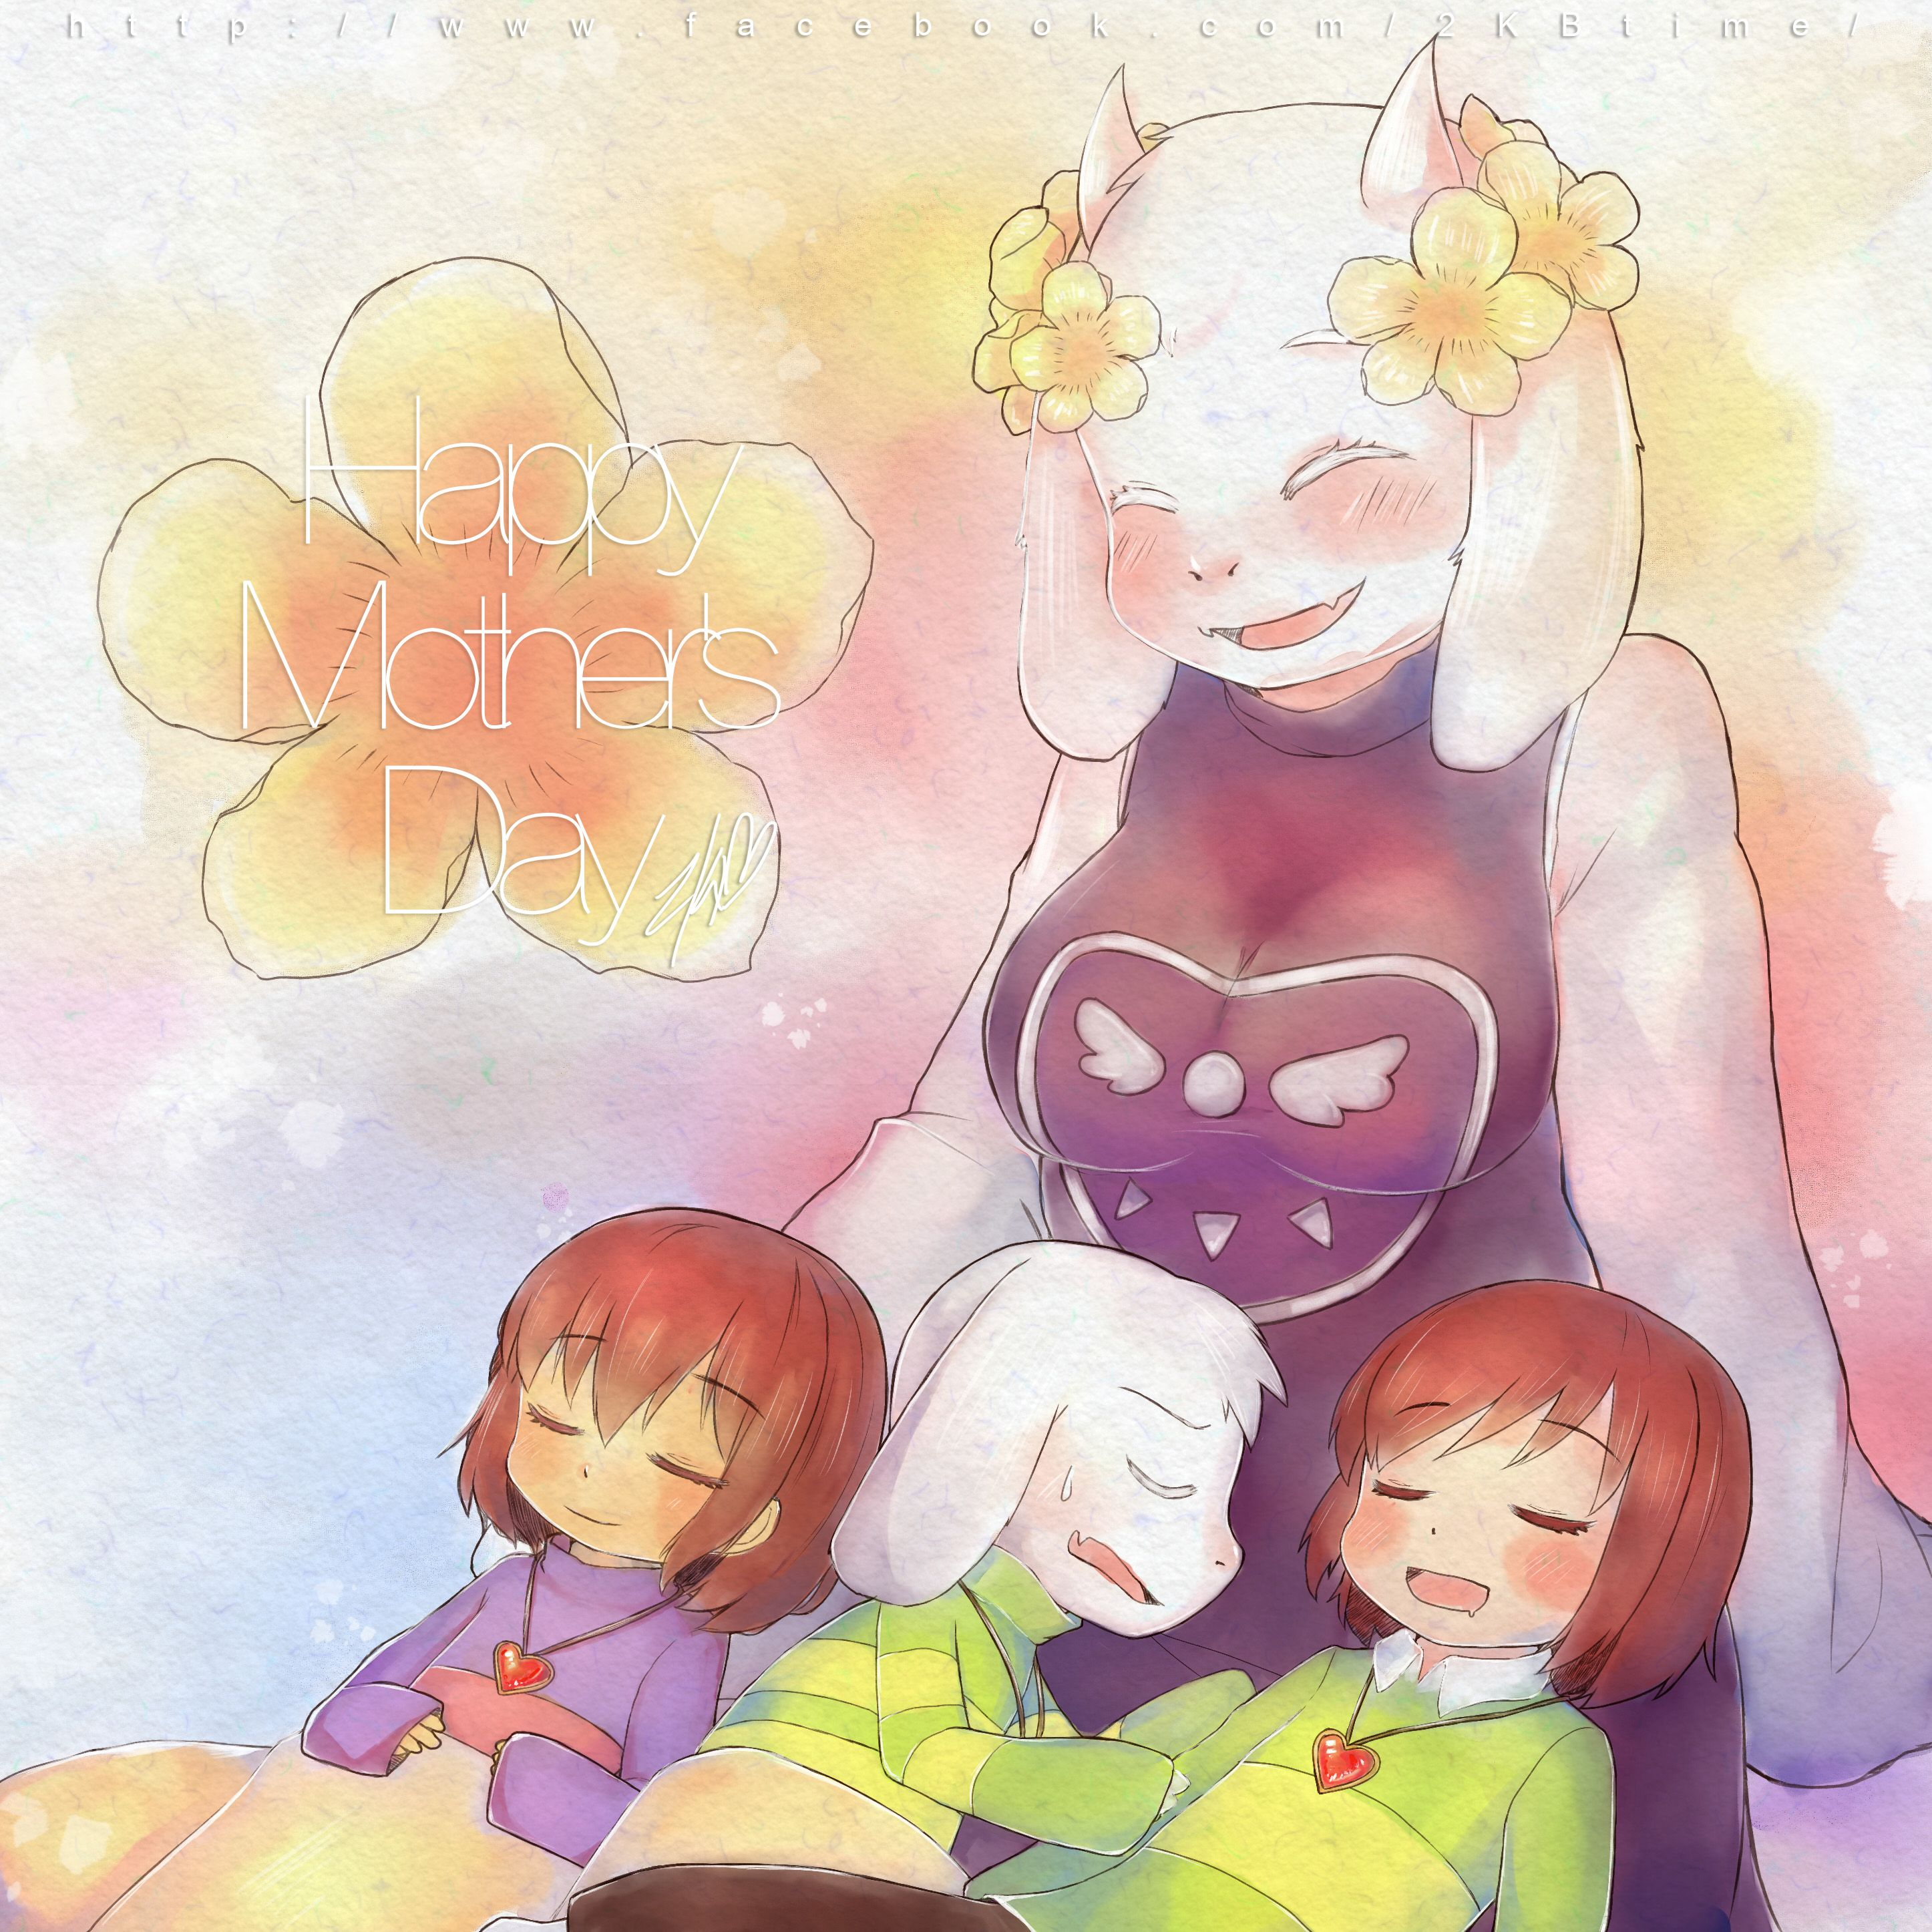 Tori Chara Undertale 2019 Frisk Asriel El And